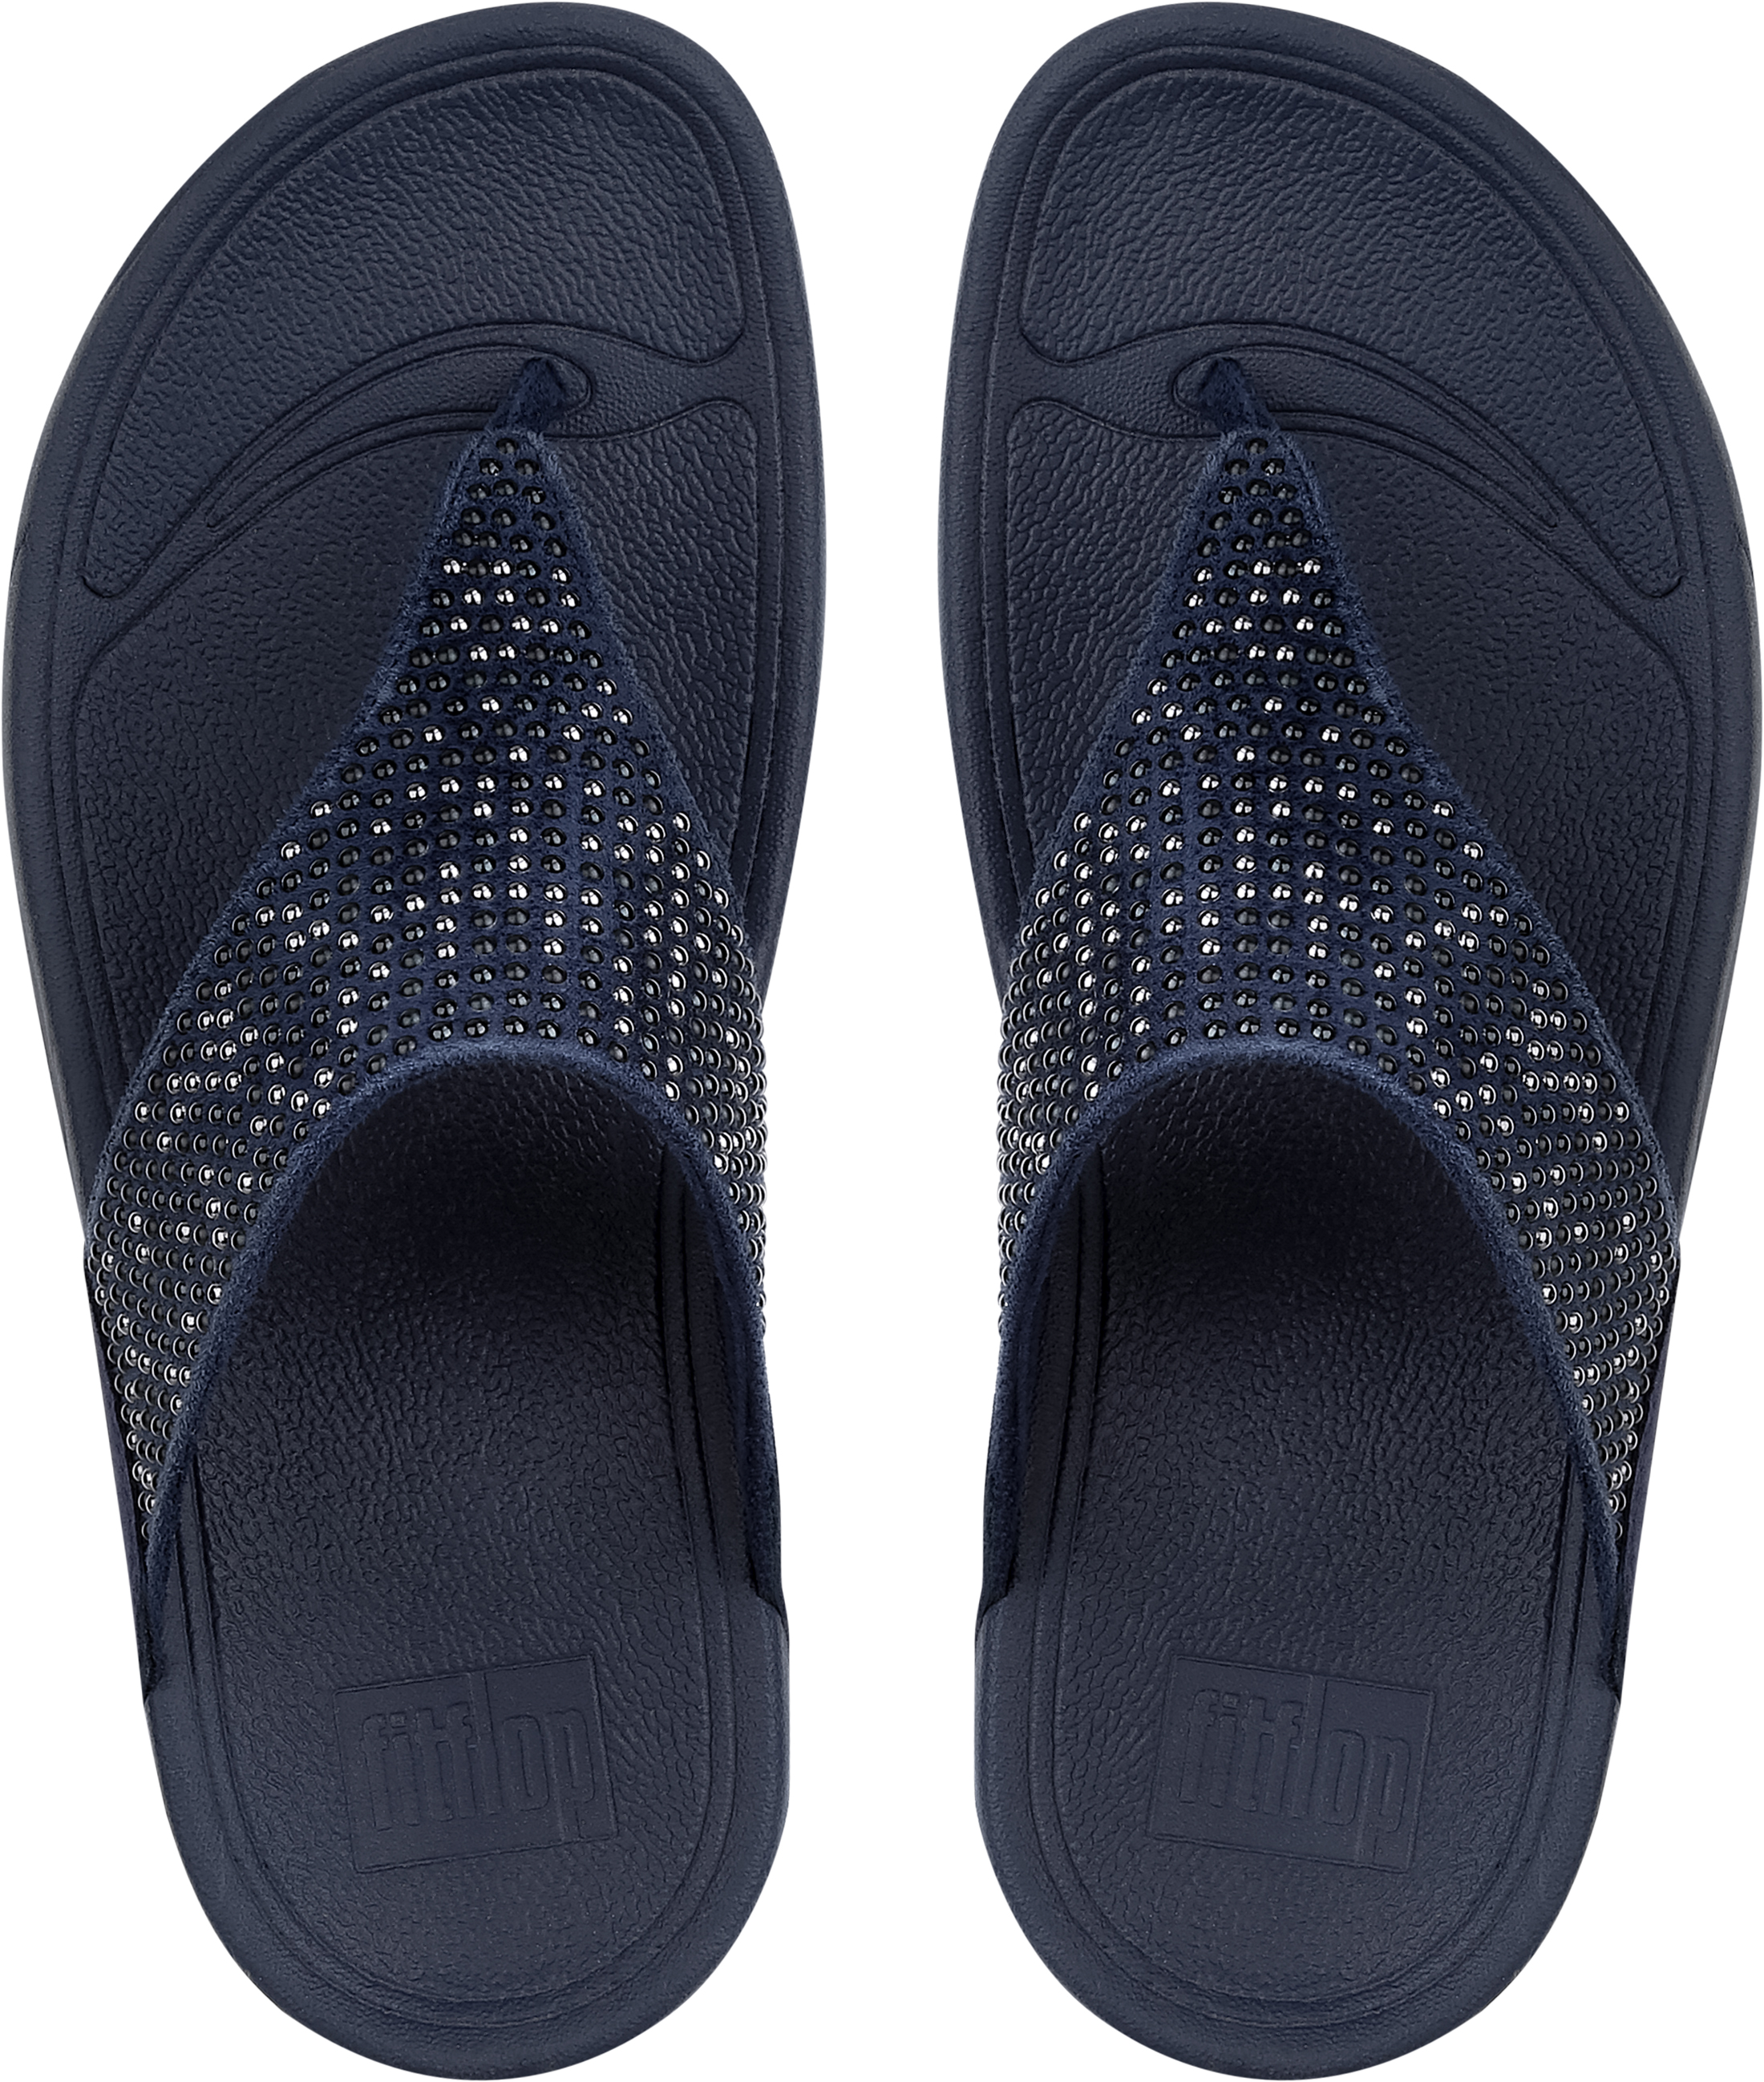 5ef6e0e1920 FitFlop Lulu Pop Stud Toe Post - Midnight Navy (textile) Womens Sandals 3  UK. About this product. Picture 1 of 4  Picture 2 of 4  Picture 3 of 4 ...